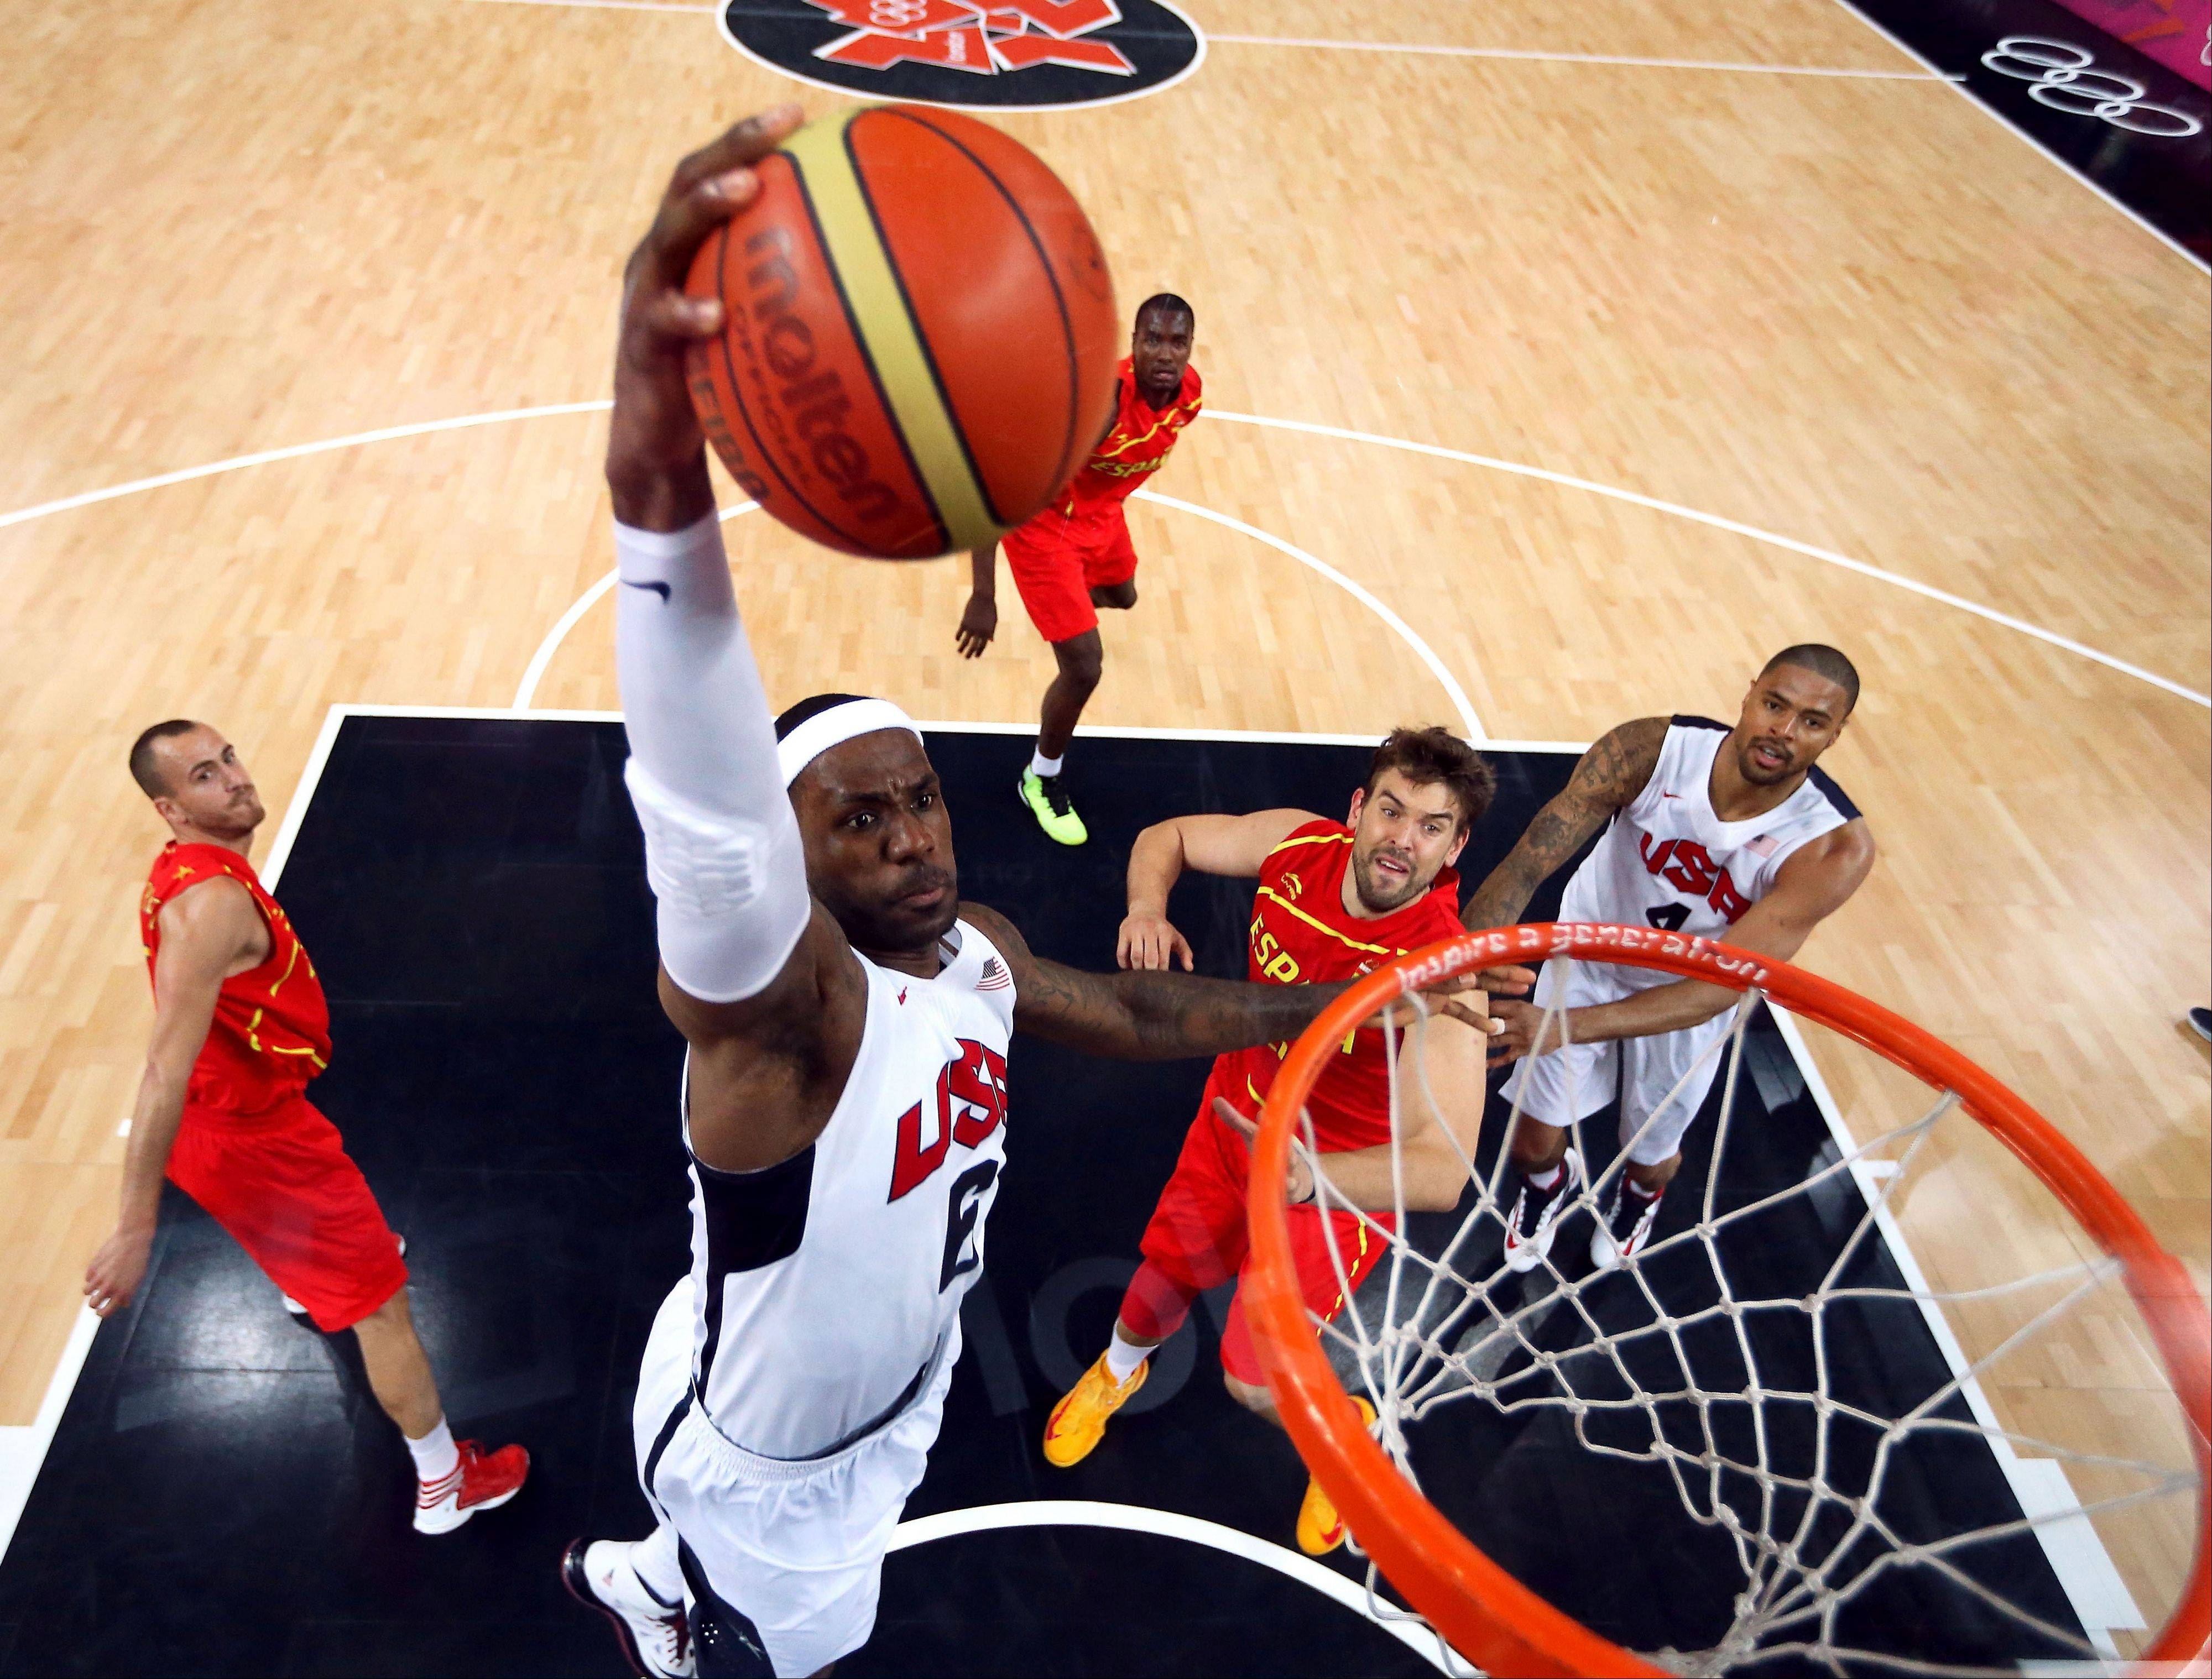 United States' LeBron James dunks against Spain during the men's gold medal basketball game at the 2012 Summer Olympics in London on Sunday.